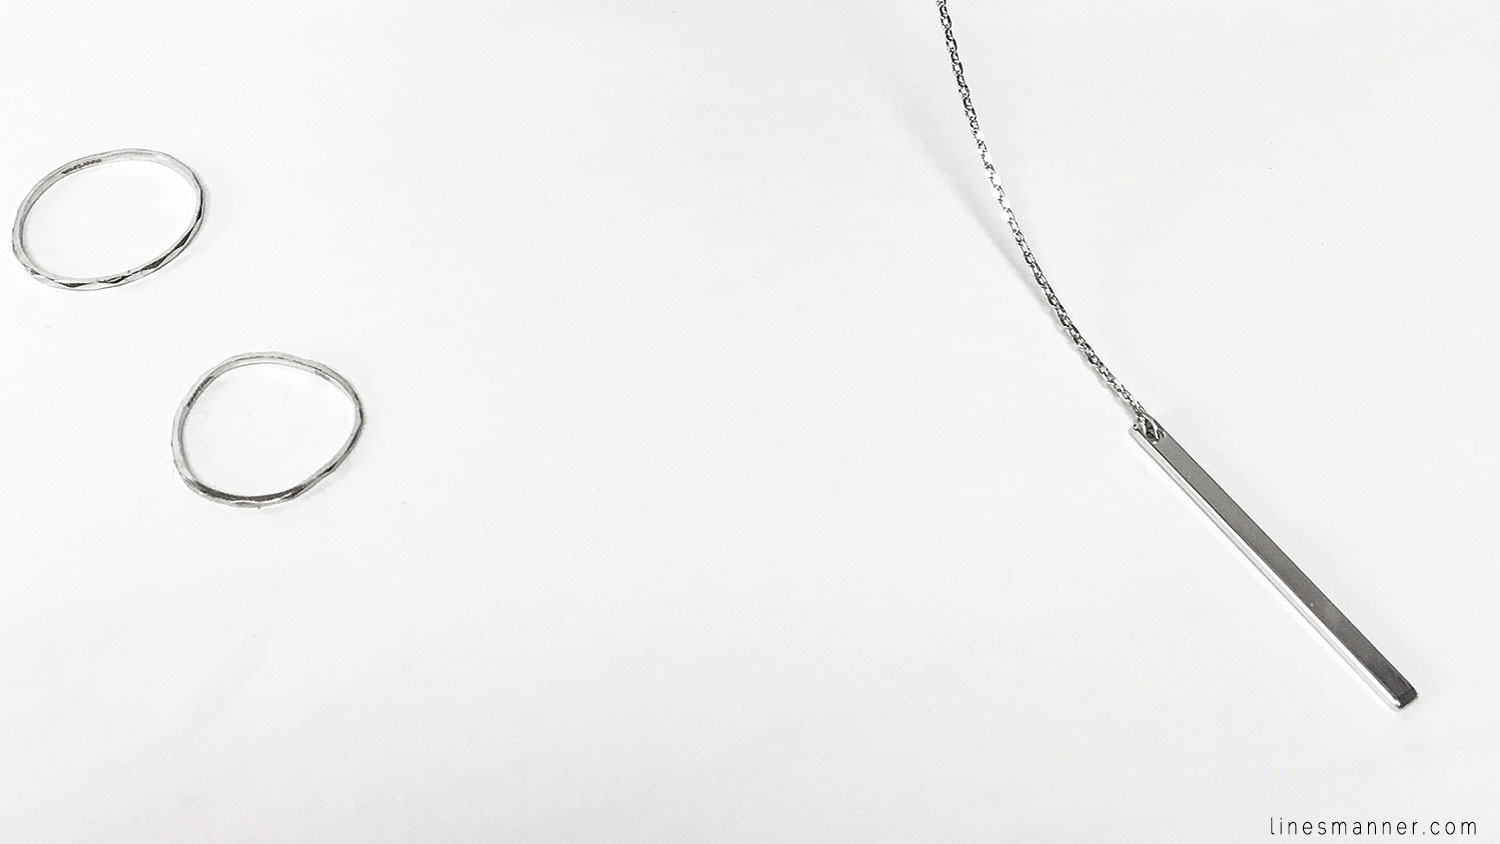 Lines-Manner-Essentials-Details-Edgy-Contemporary-Silver-Hardware-Minimal-Aesthetic-Timeless-Quality-Jewellery-Madeleine_Issing-Shopmoortown-Klarf-Jewel_Rue-1